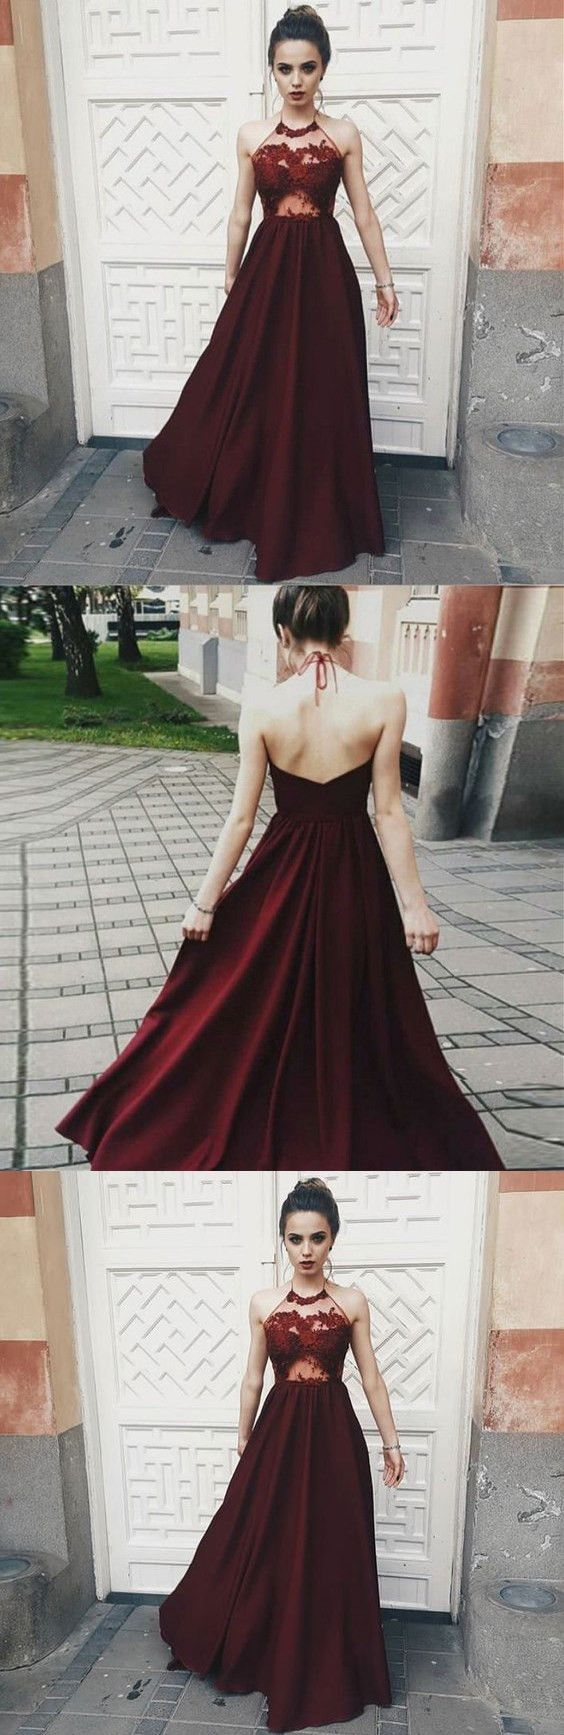 Opening back sexy prom dresses dark red illusion bodice halter long